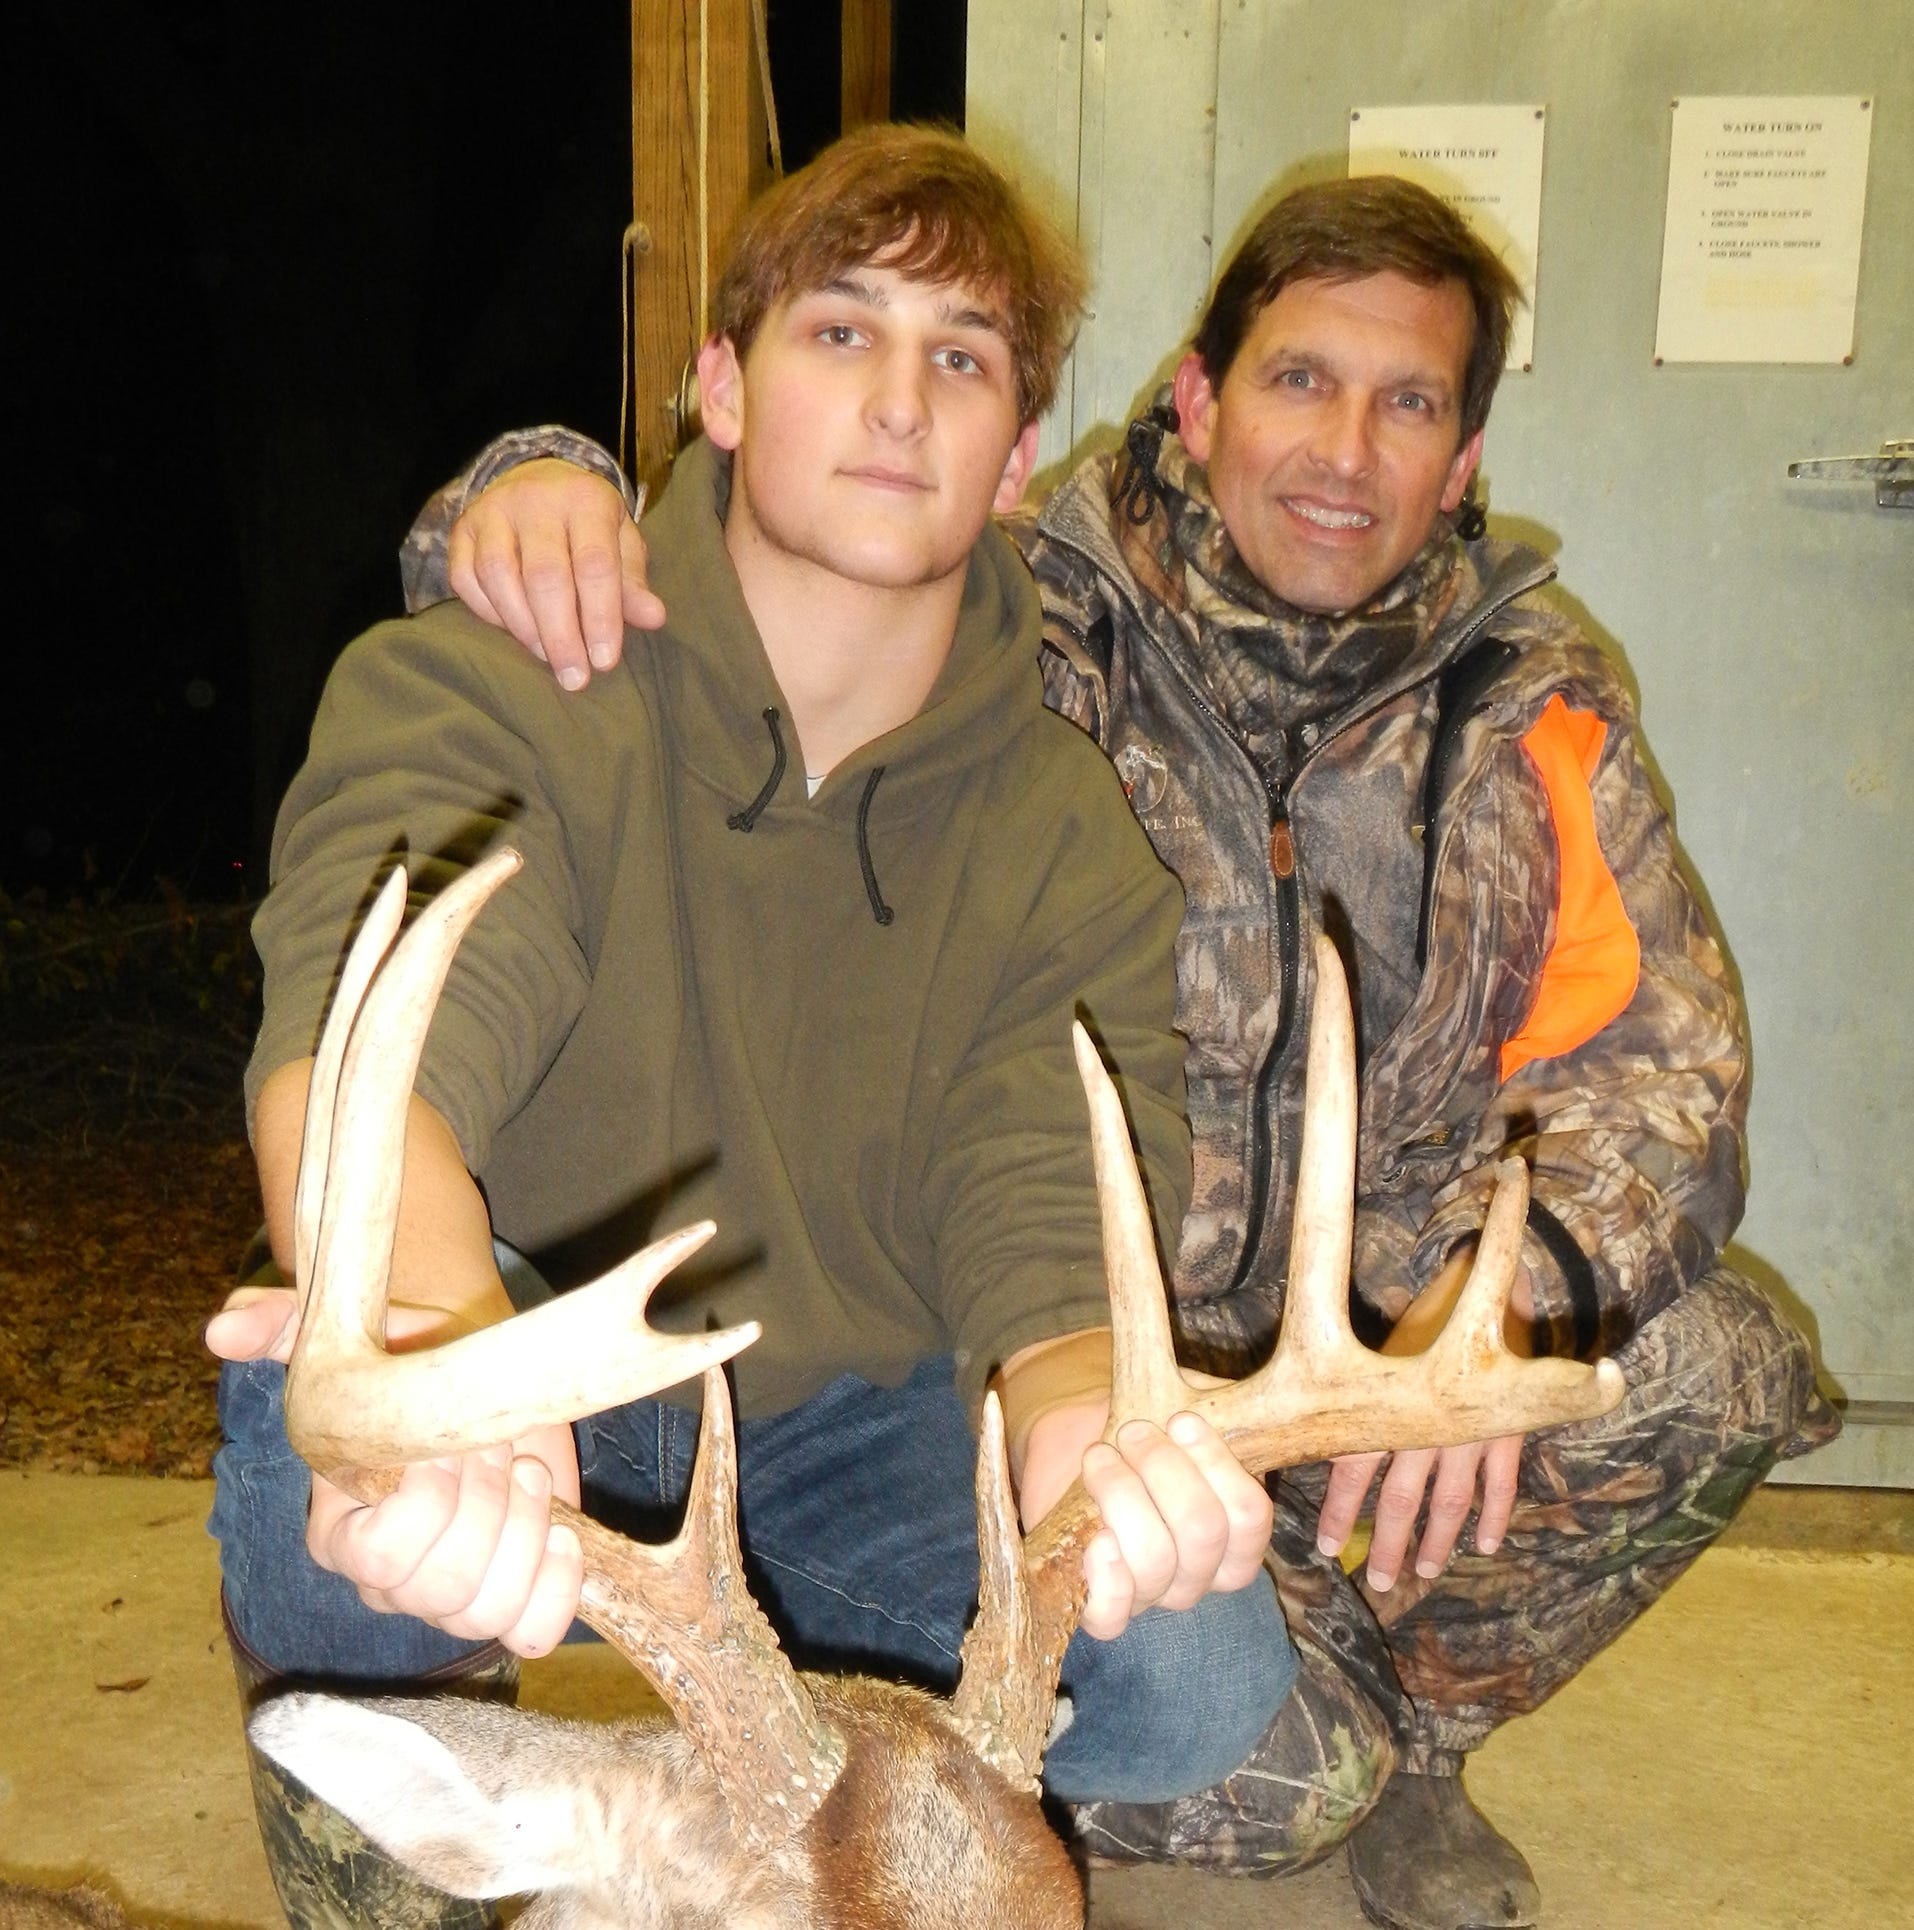 Want to hold bucks on your hunting land? You'll need more than food, study indicates